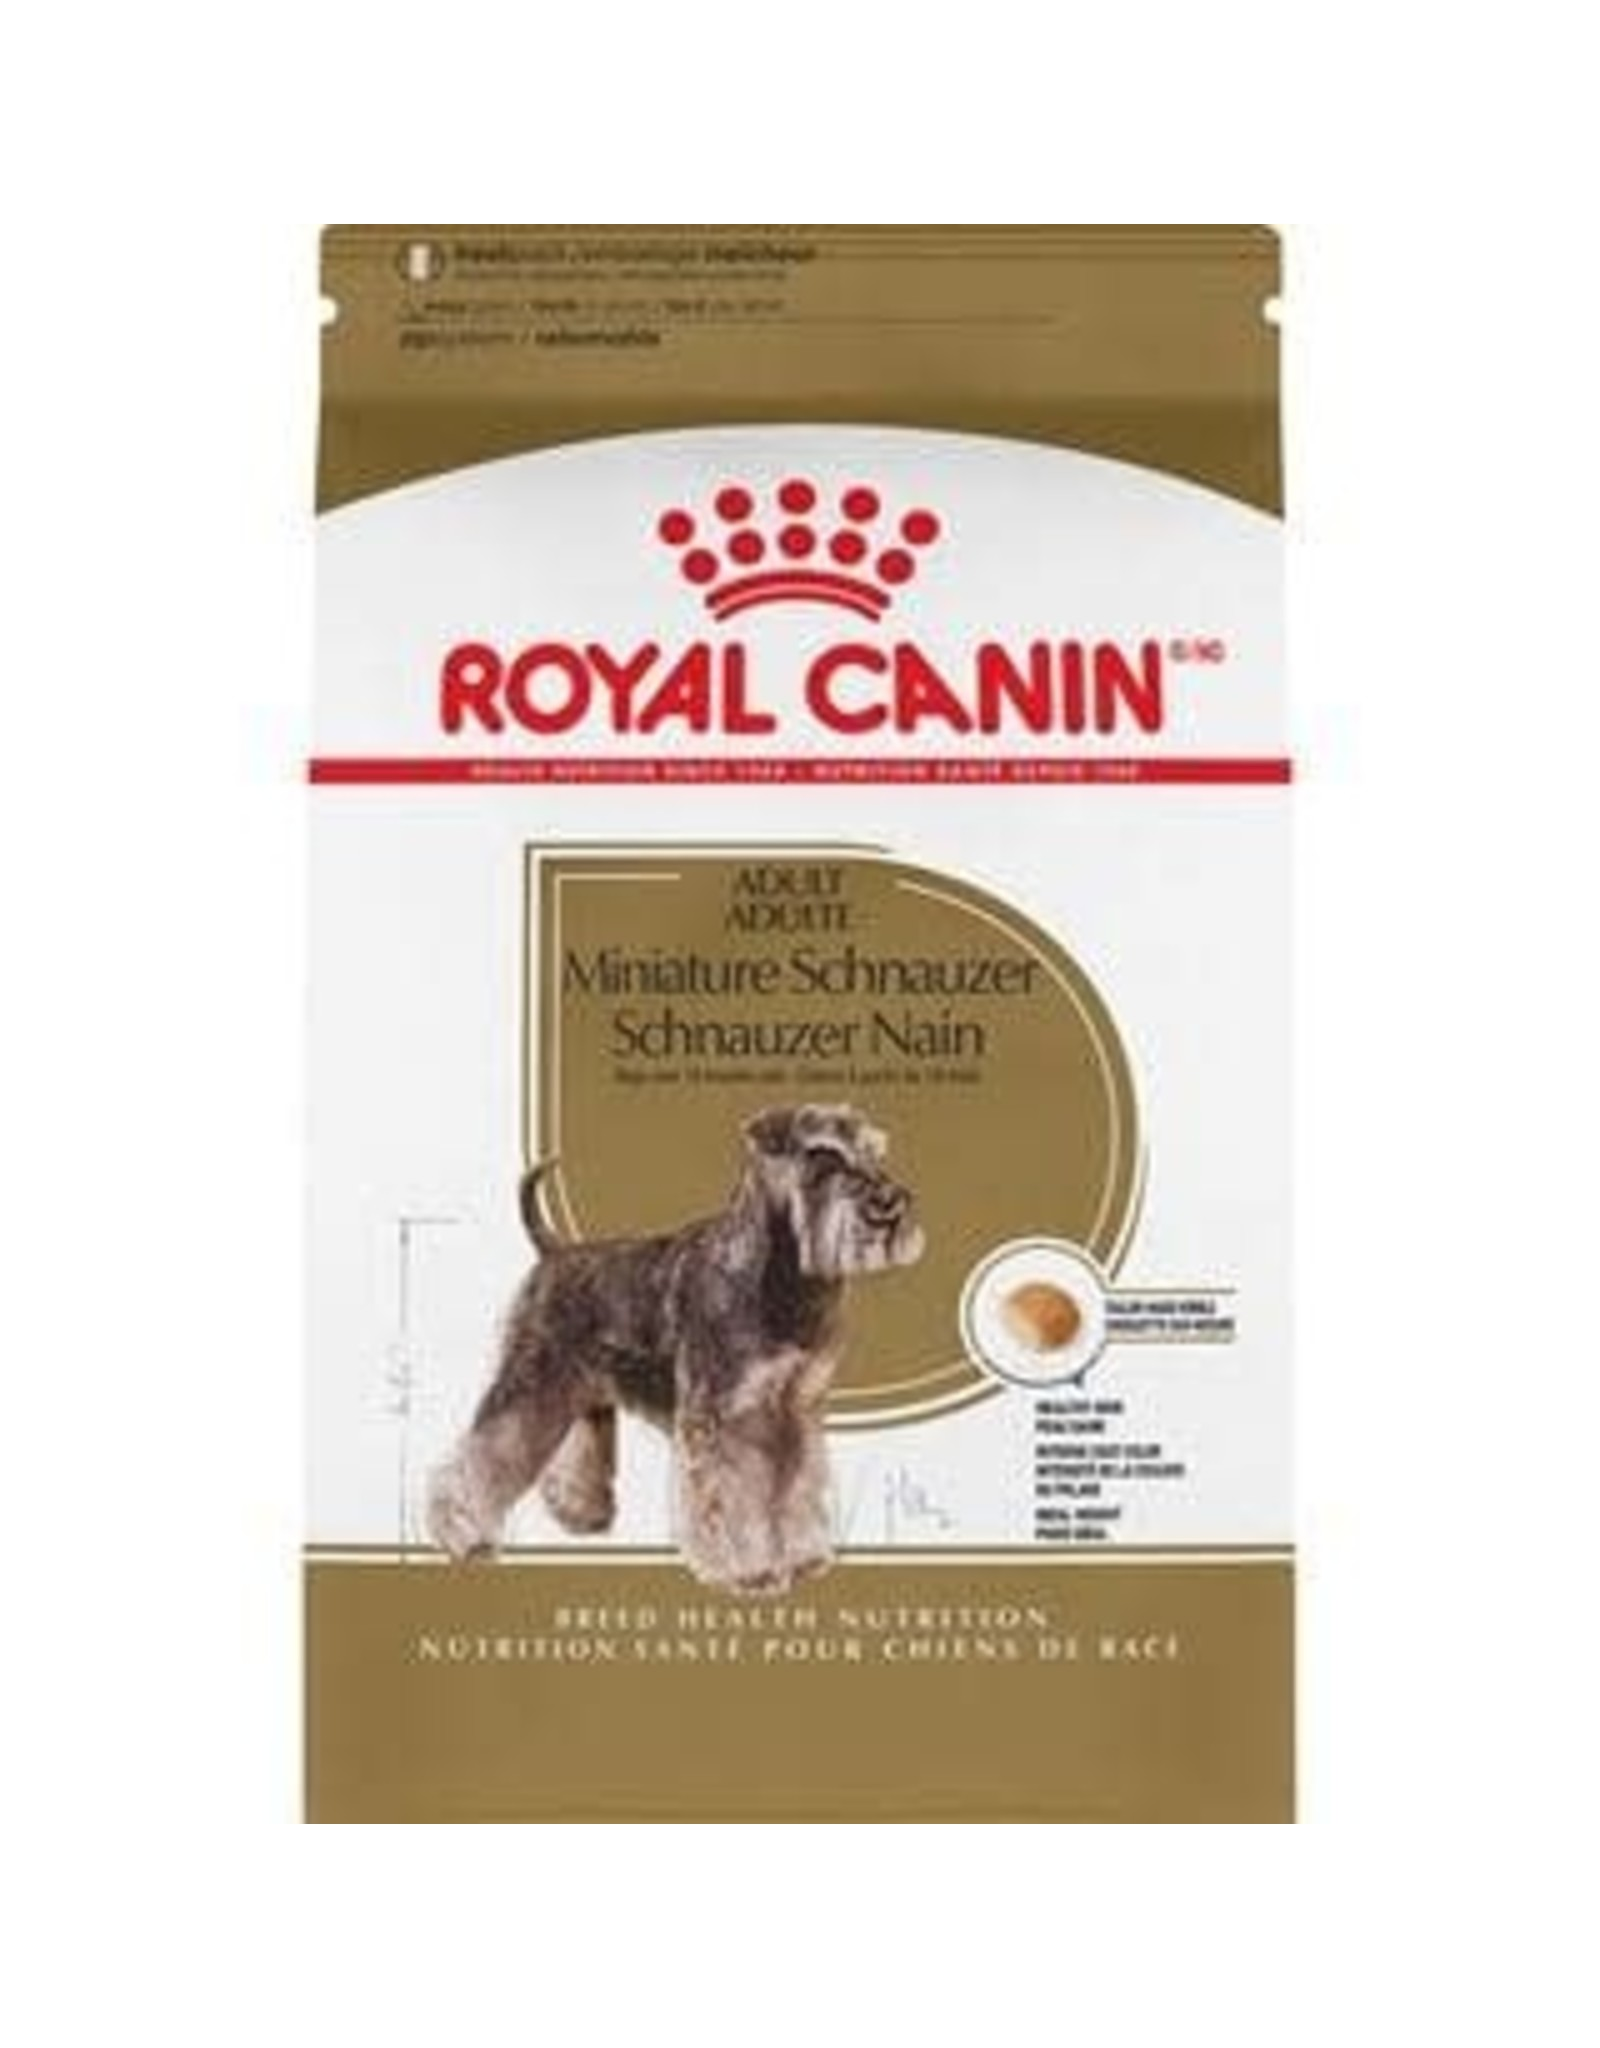 Royal Canin Royal Canin Dog - Mini Schnauzer